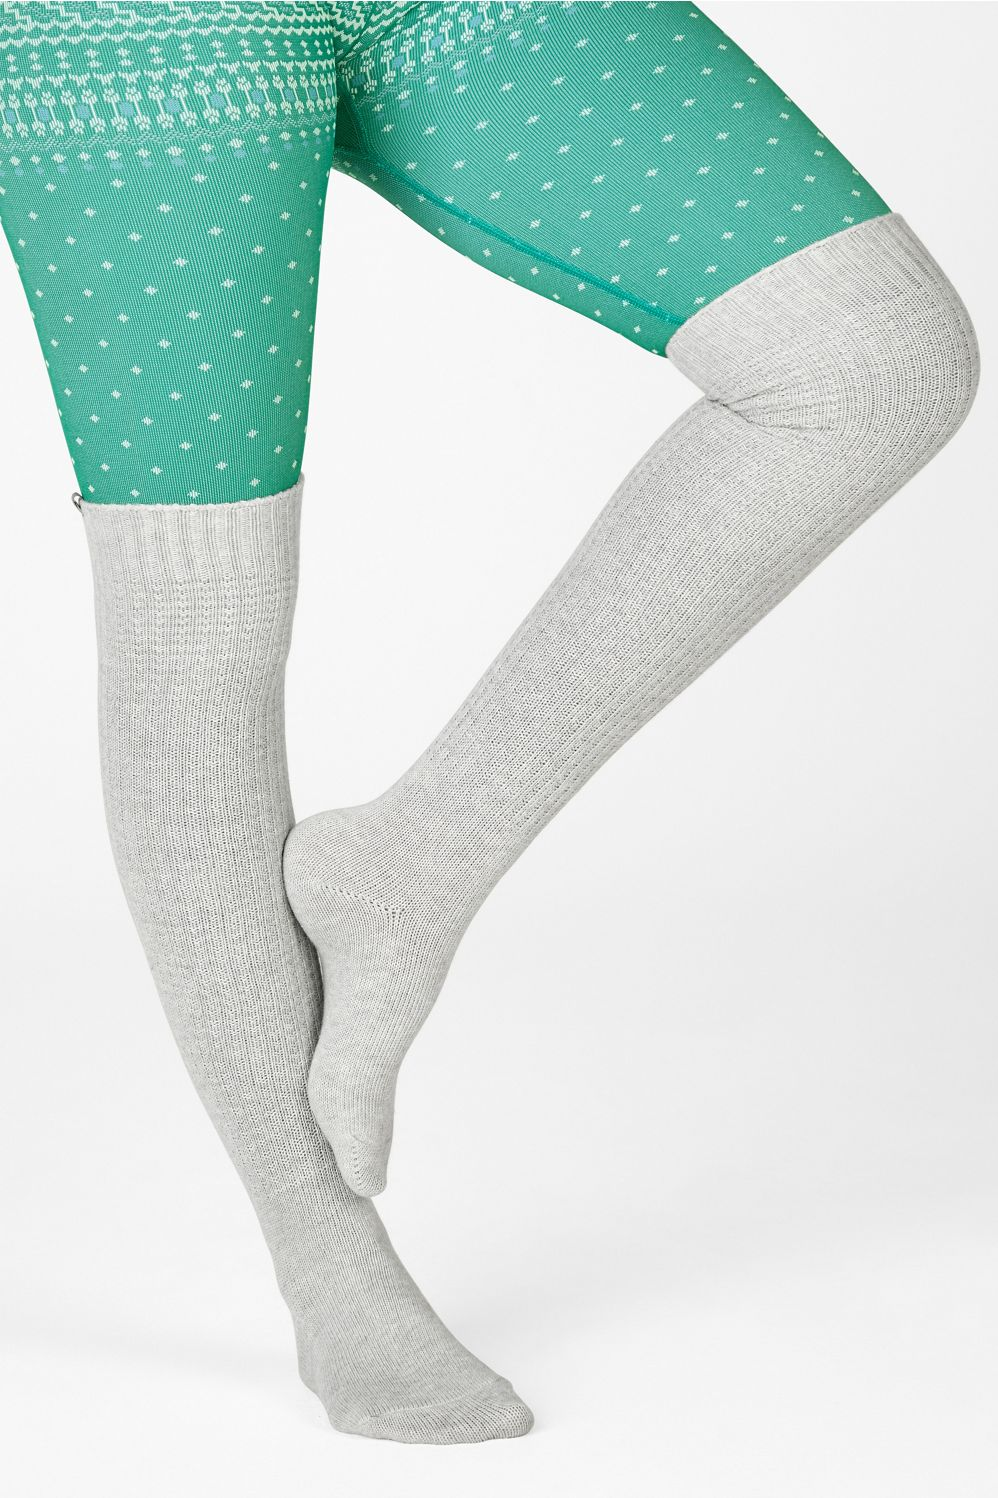 These statement-making, thigh-skimming socks look just as cute at home (paired with a sweet onesie) as they do layered under knee-high boots on your next night out.